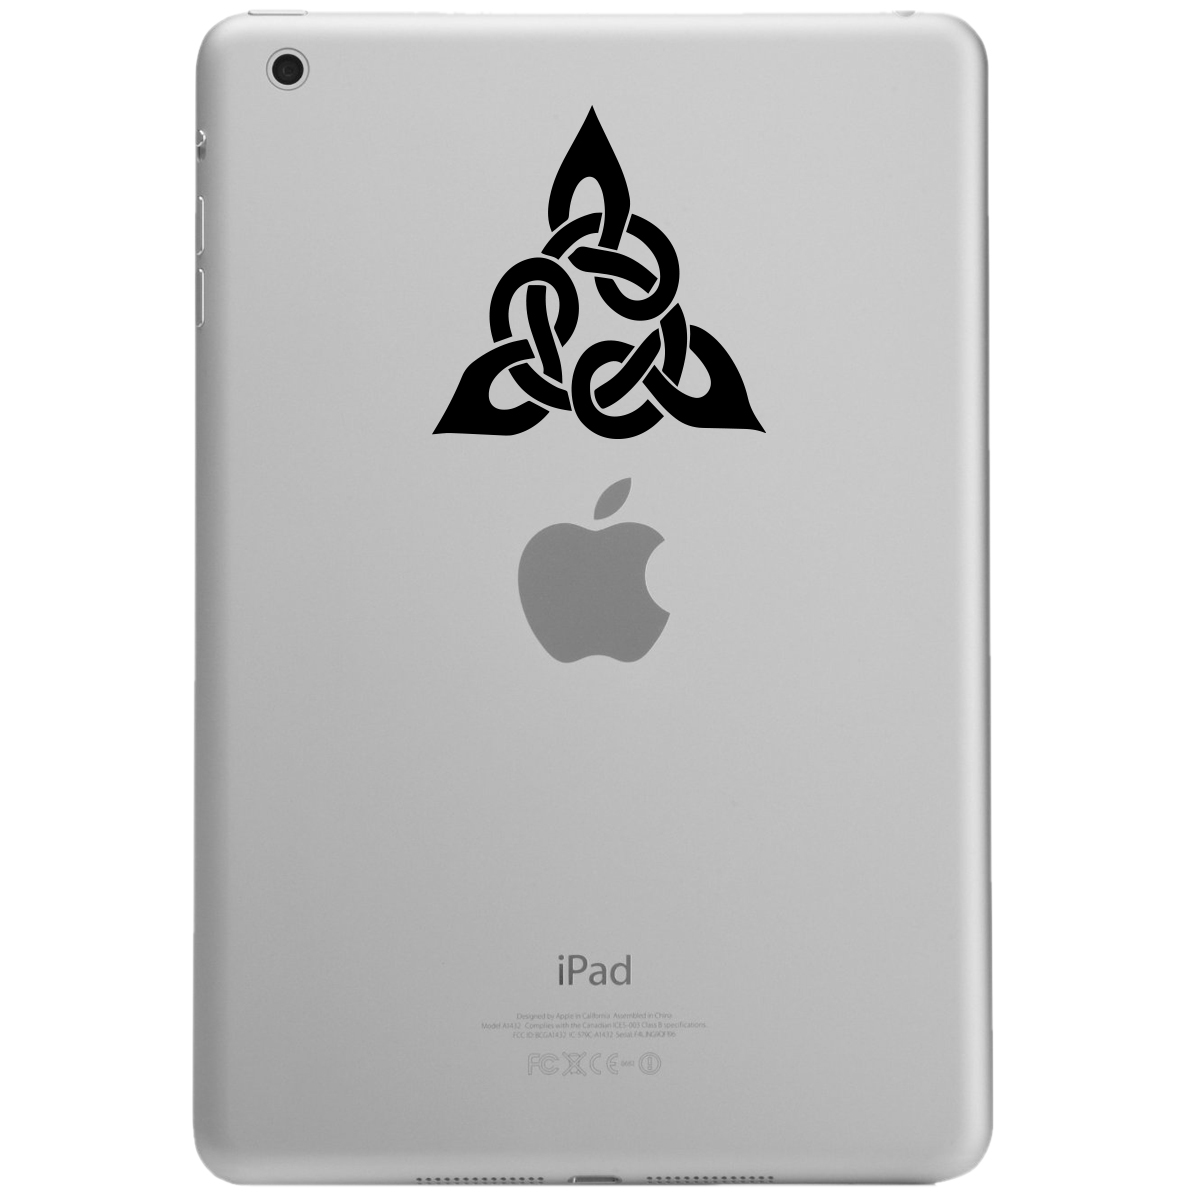 Triangular Celtic Cross Knot iPad Tablet Vinyl Sticker Decal